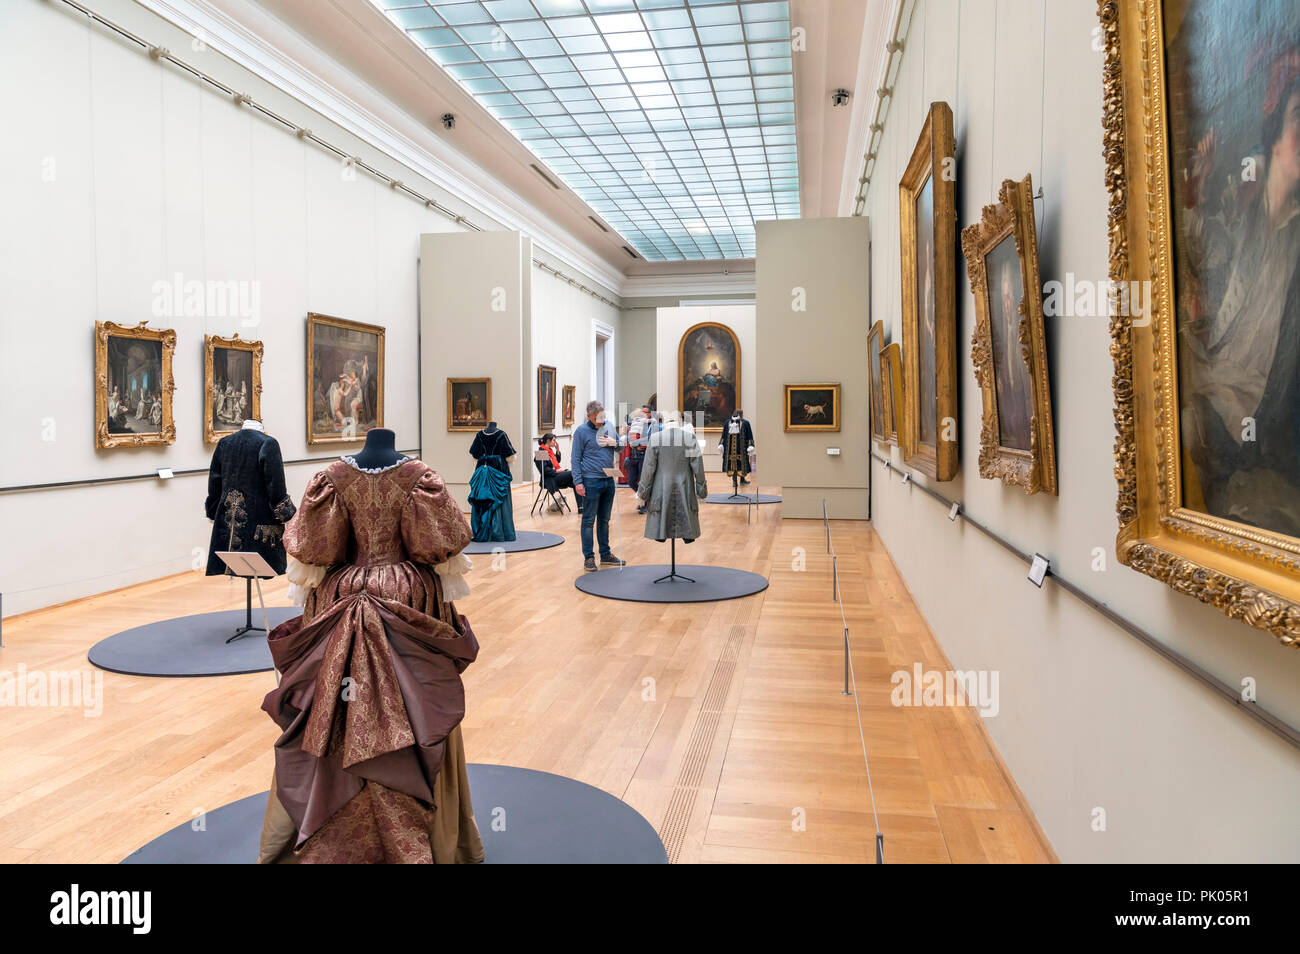 Gallery in the Palais des Beaux Arts, Lille, France Stock Photo